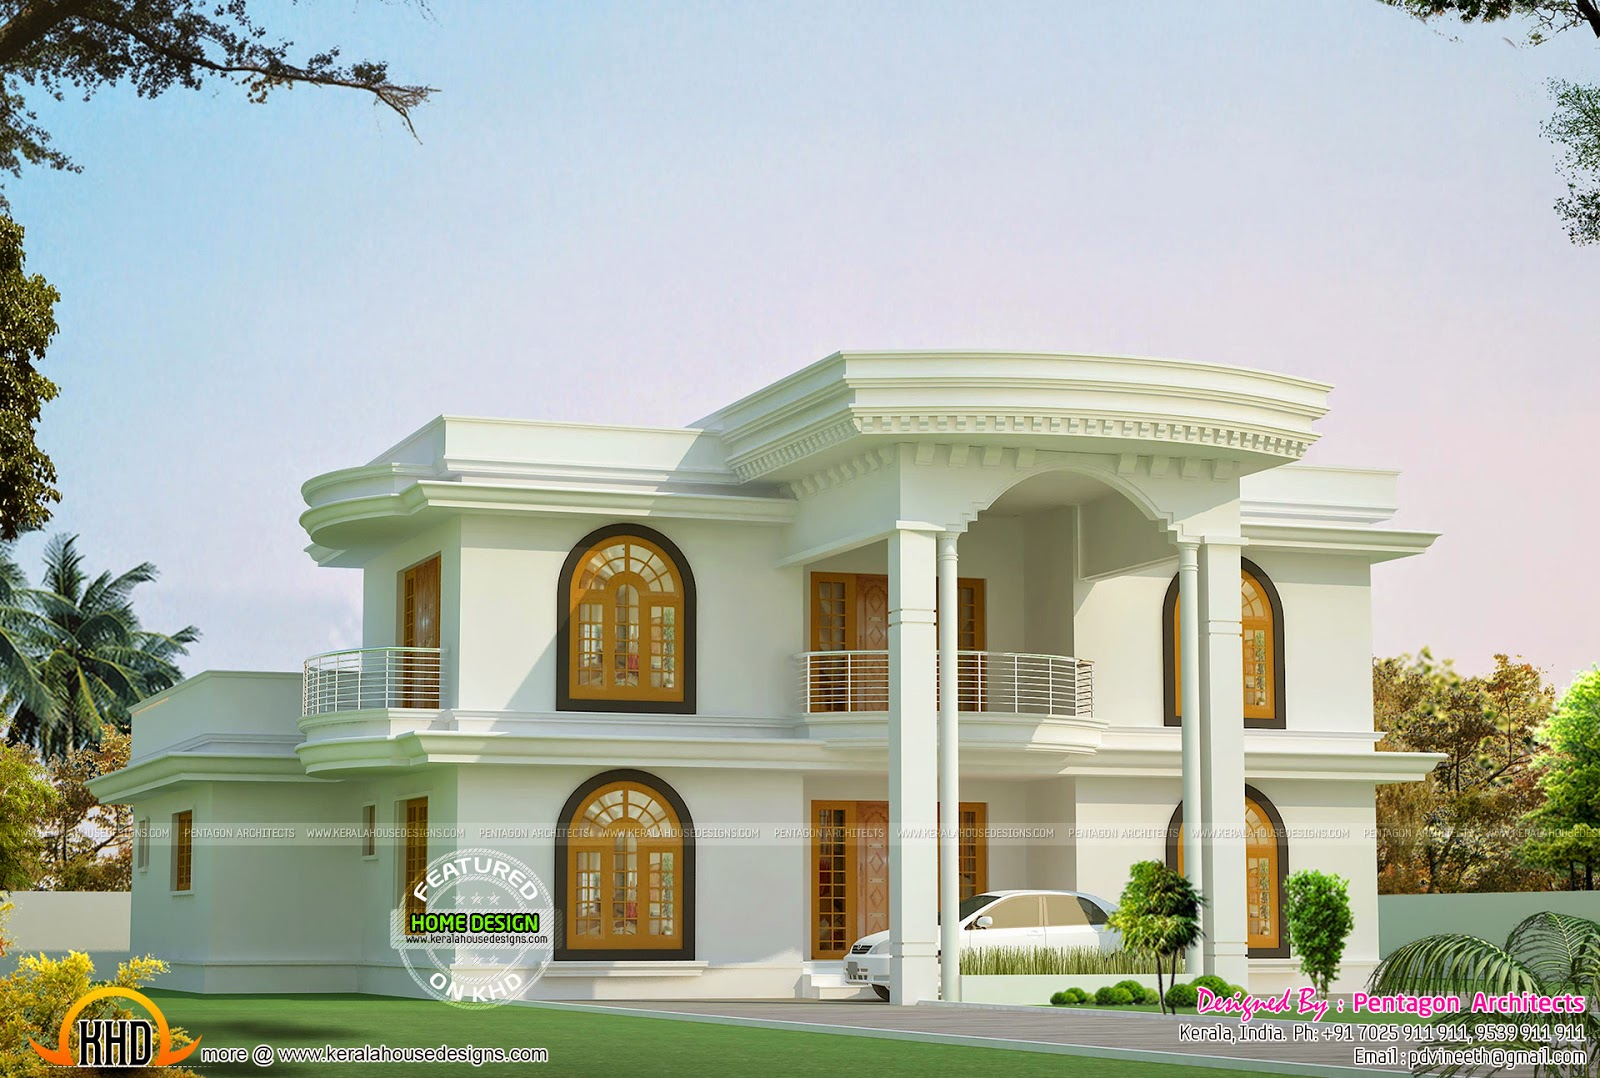 Kerala house plans set part 2 kerala home design and for Kerala house plans with photos free